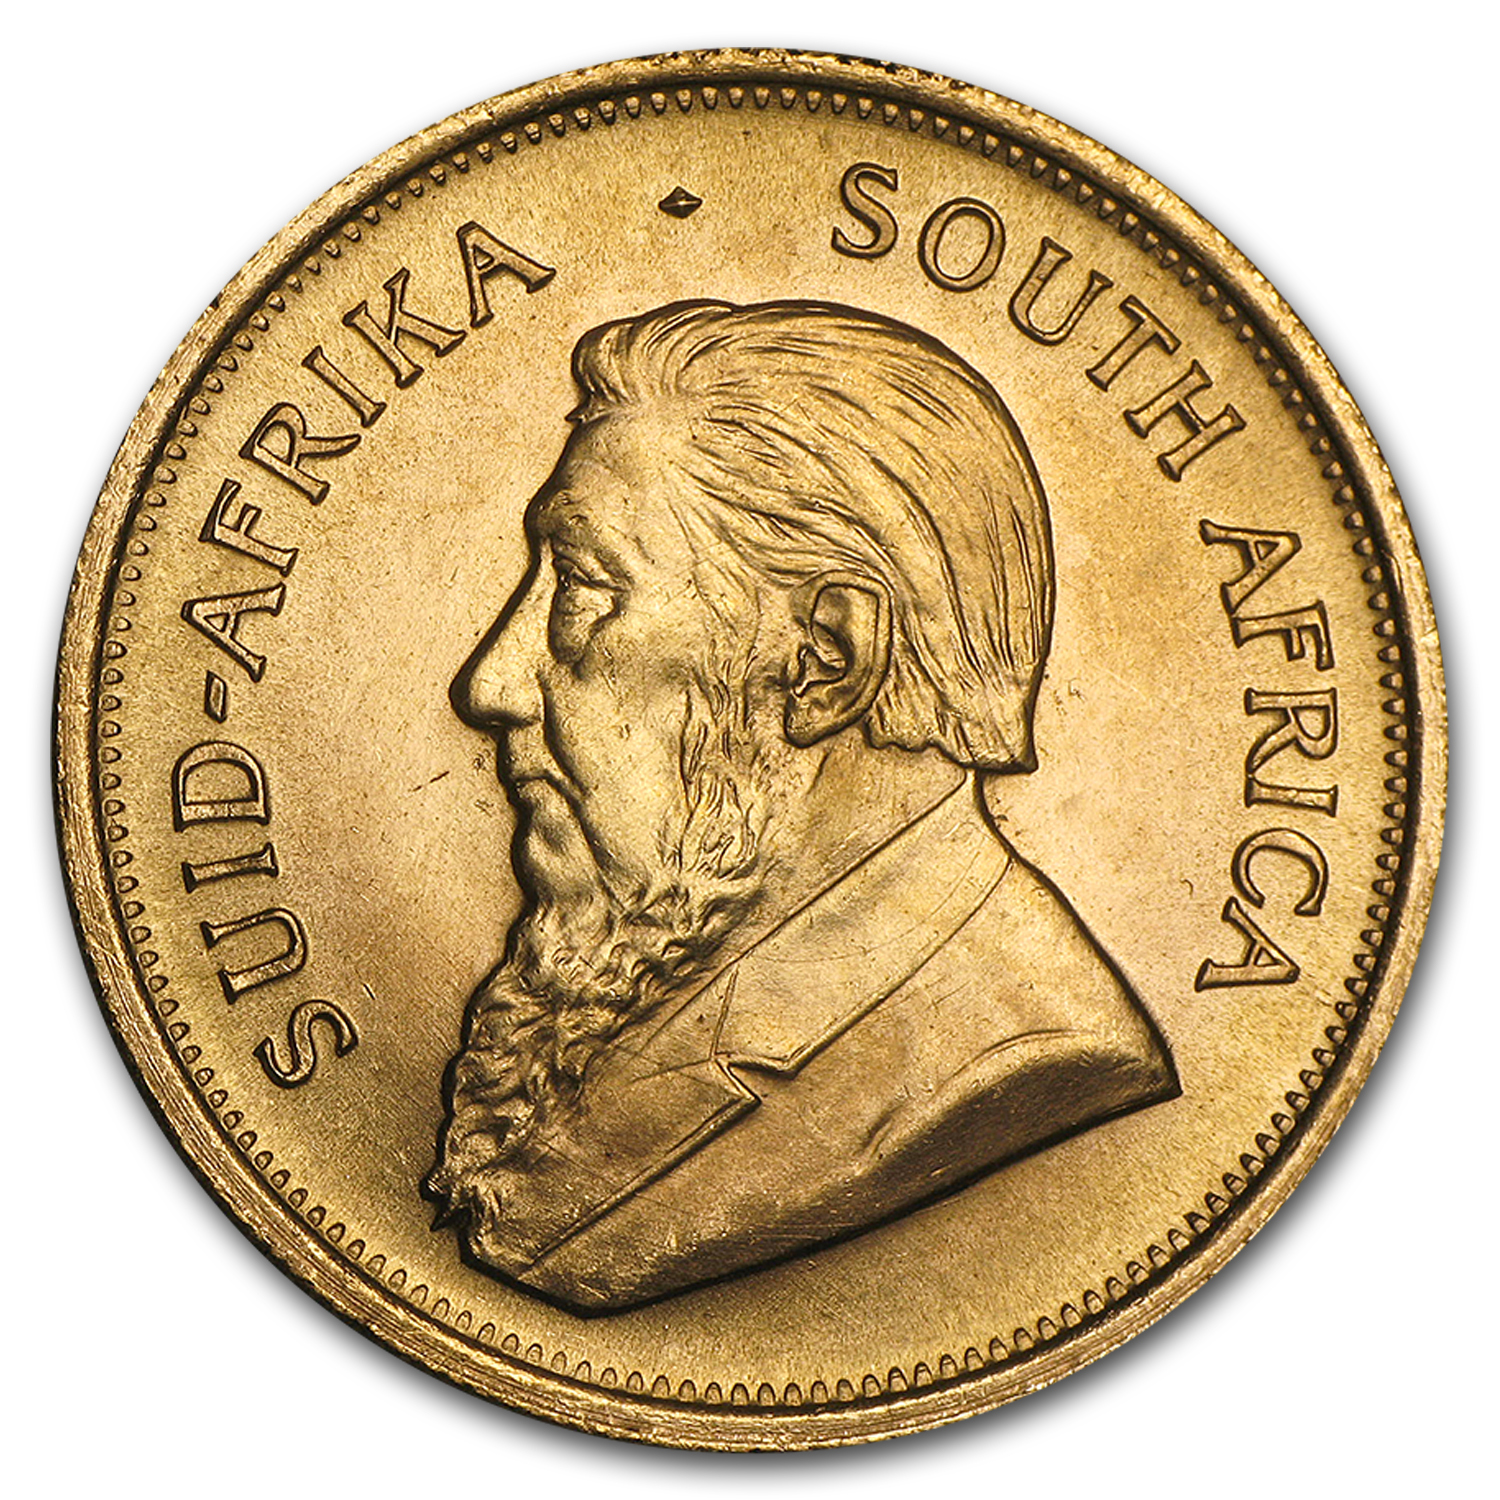 1970 1 oz Gold South African Krugerrand